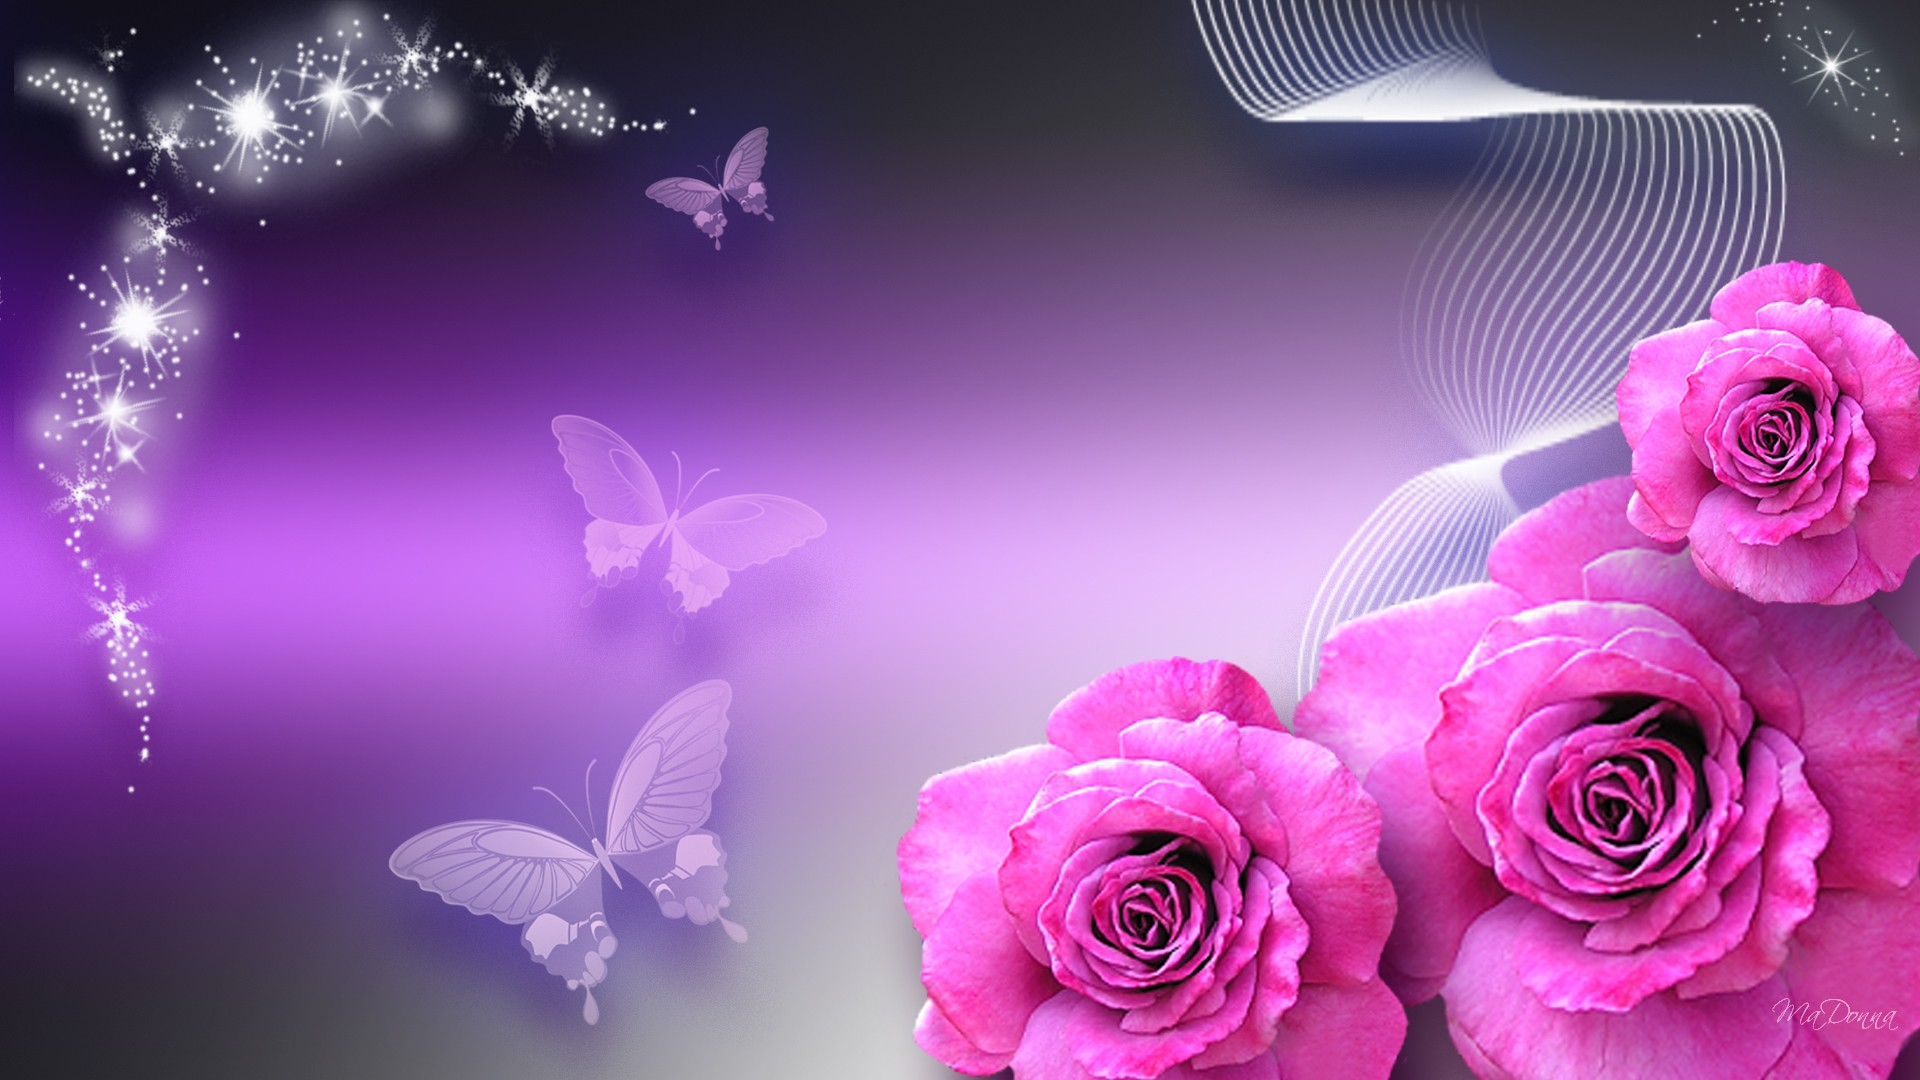 Purple flower wallpaper hd desktop